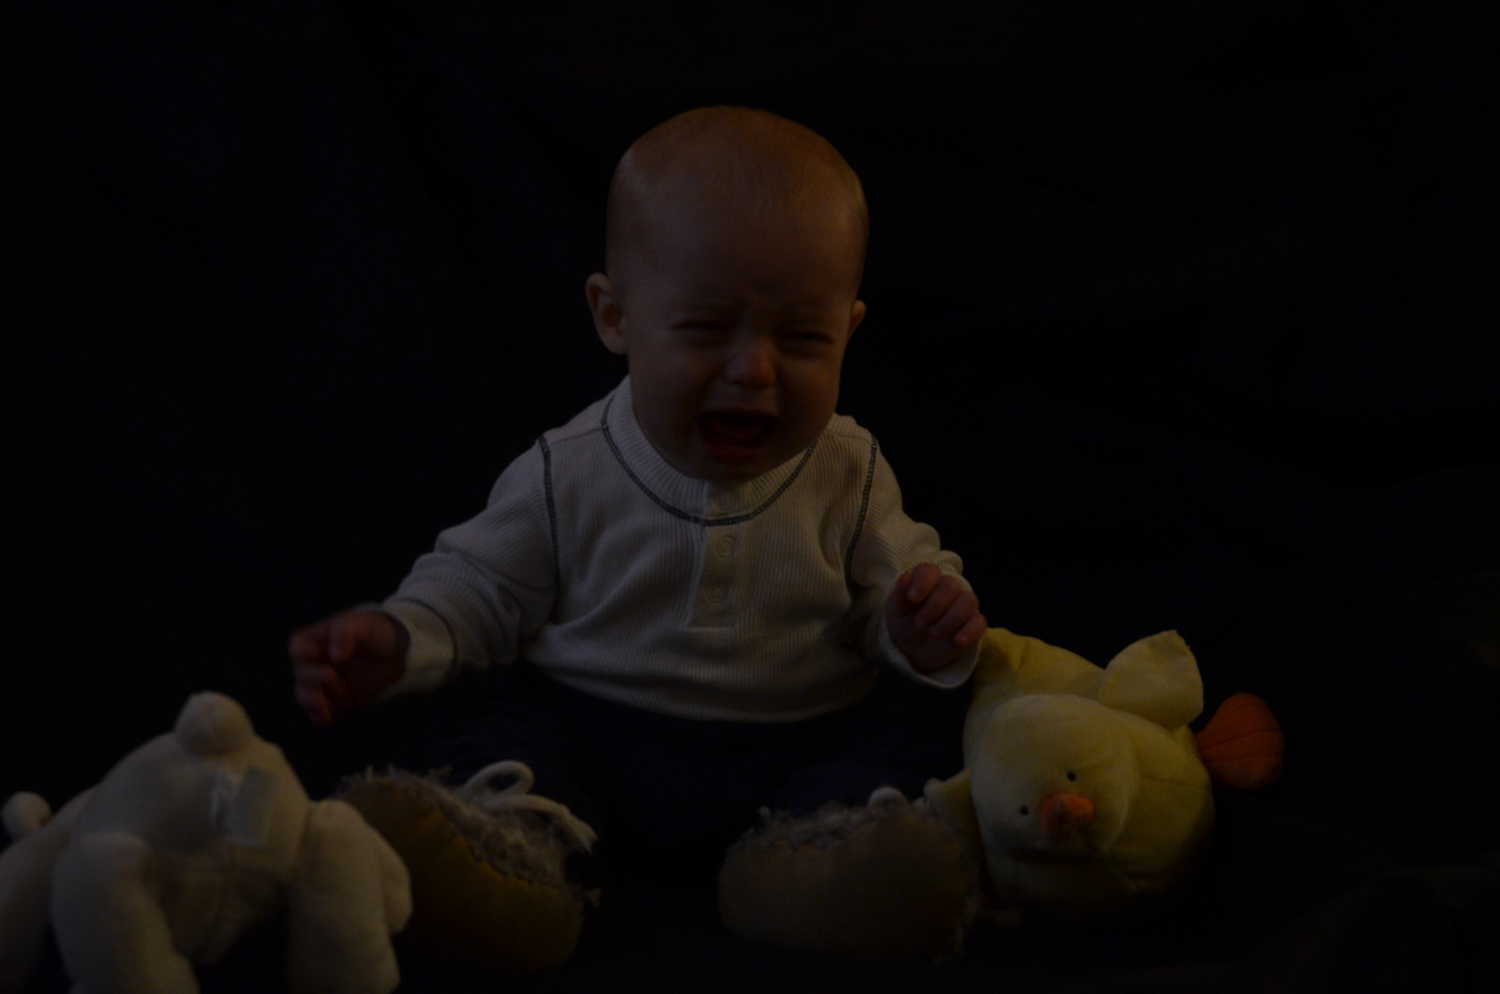 Image: This was my first attempt at a formal portrait of my son. I had no idea how to work my camera...